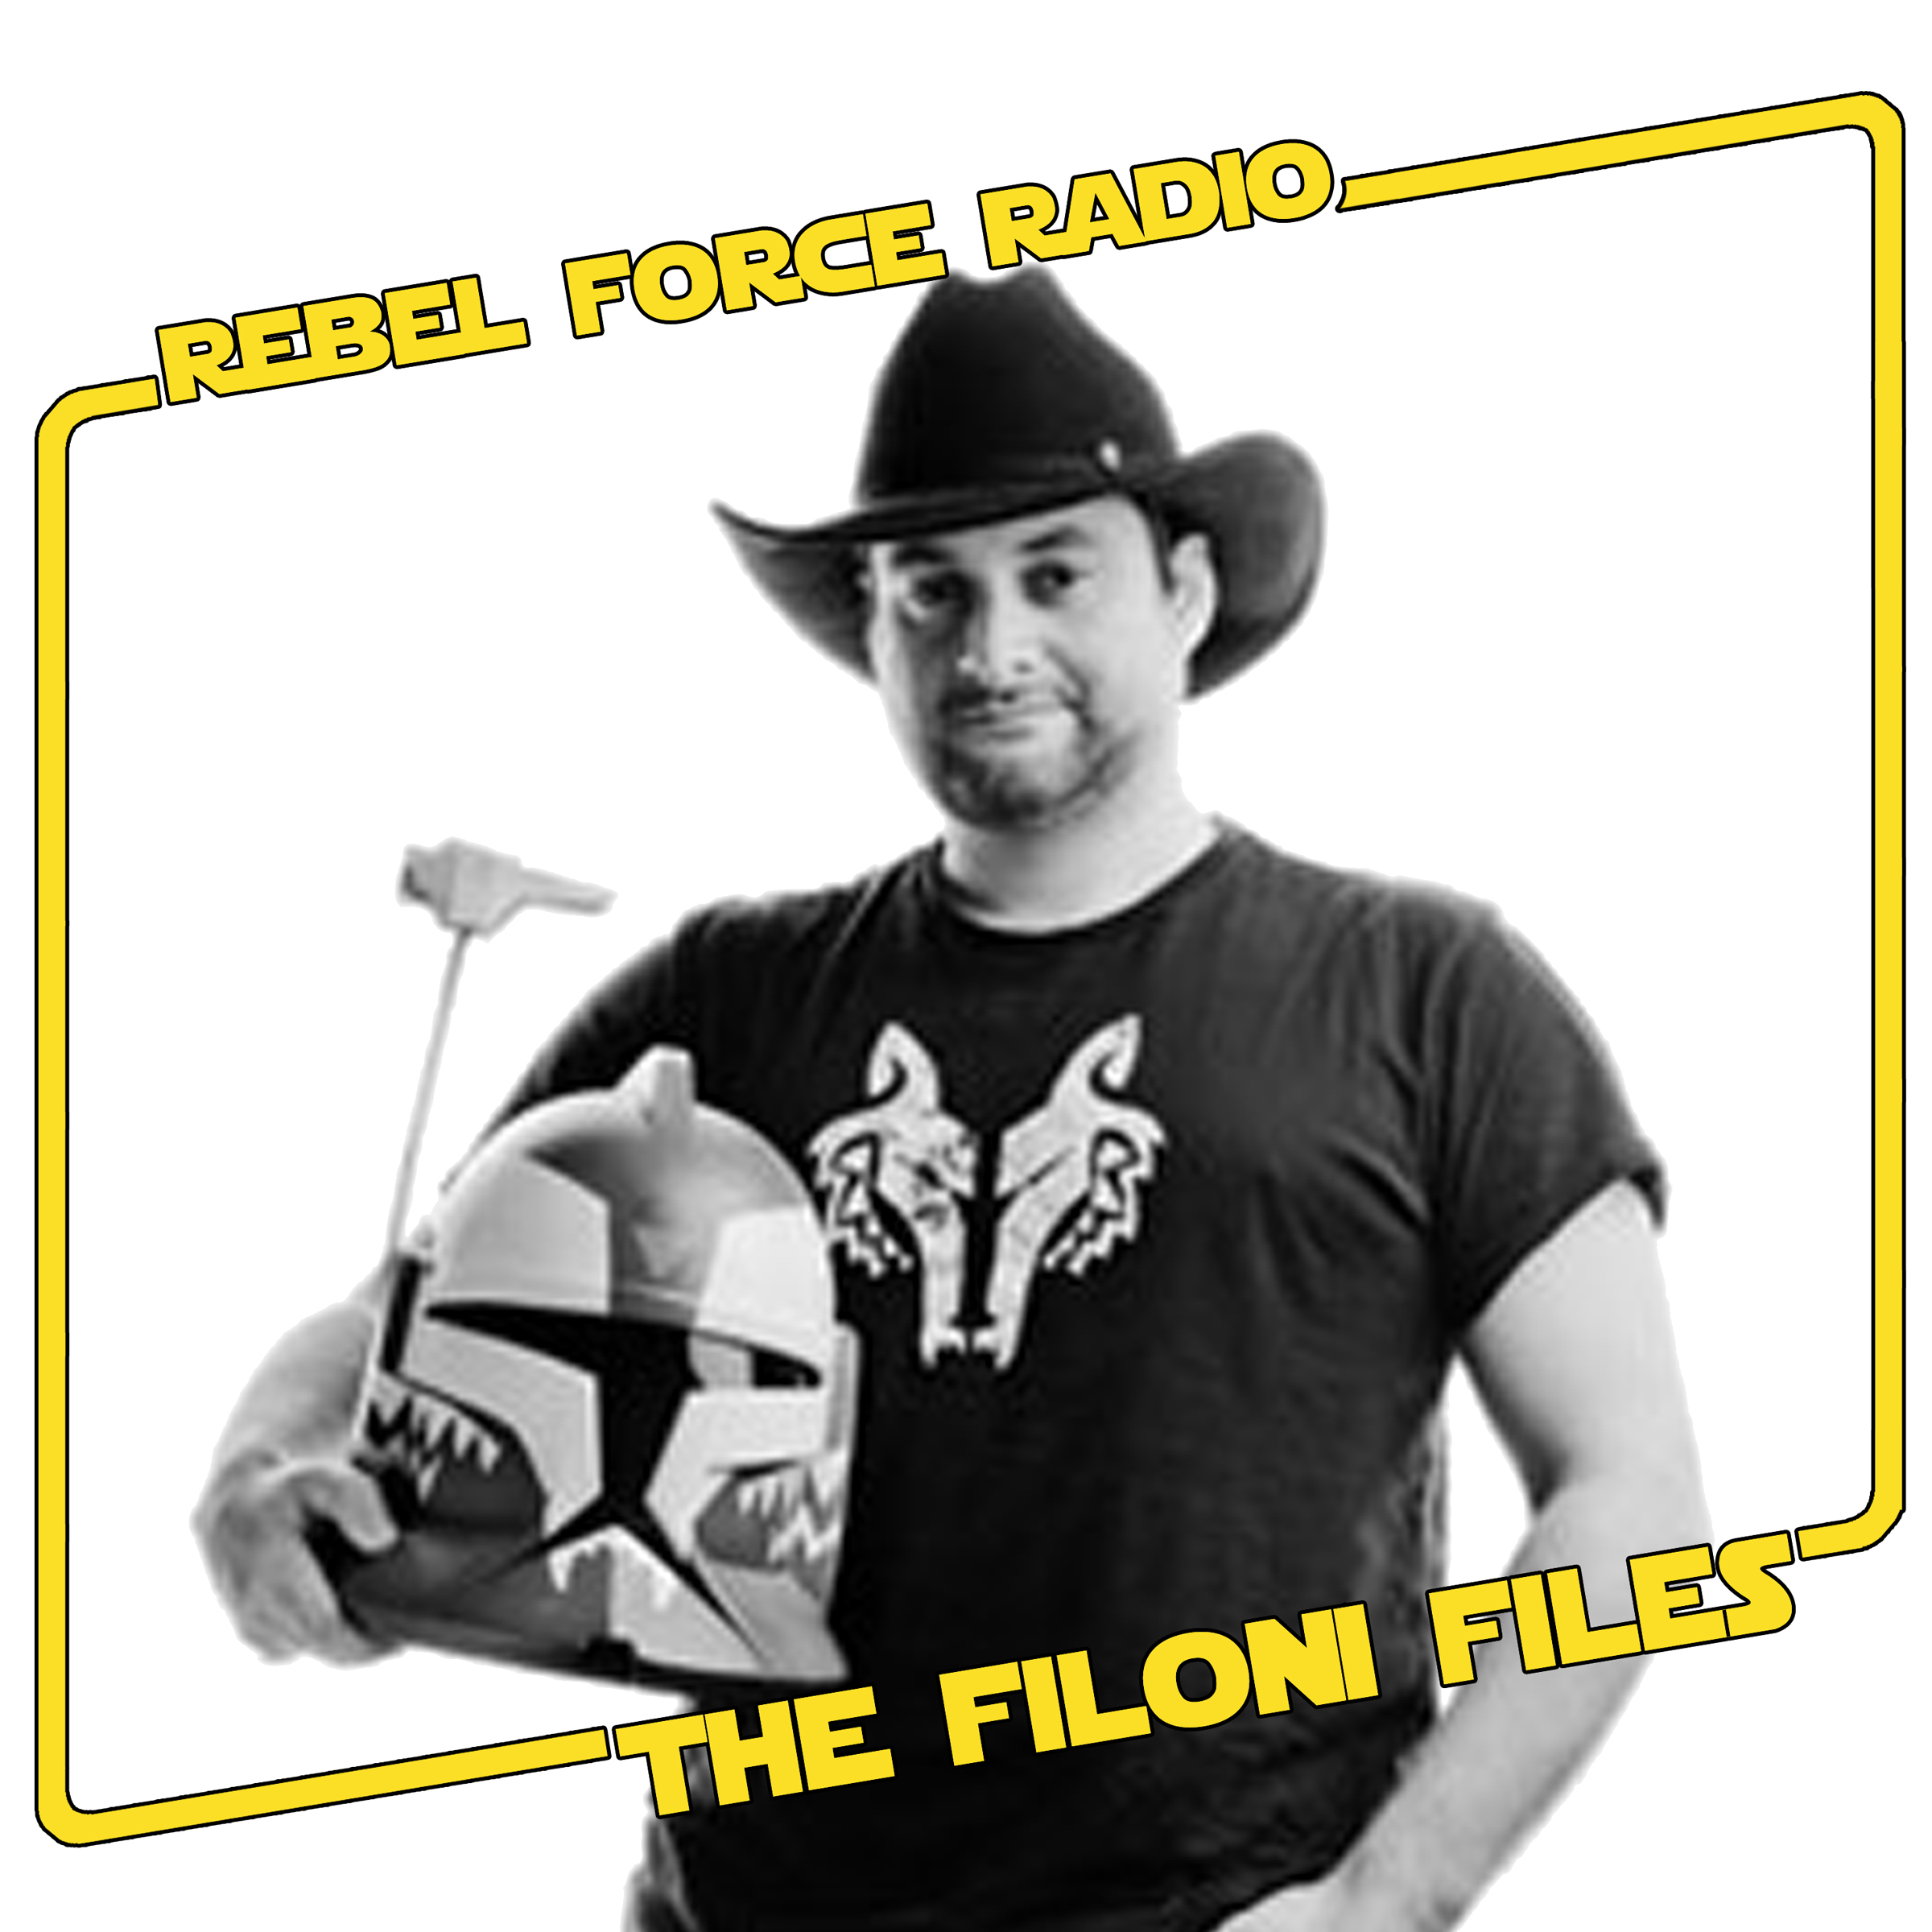 Album_Filoni_Files.jpg